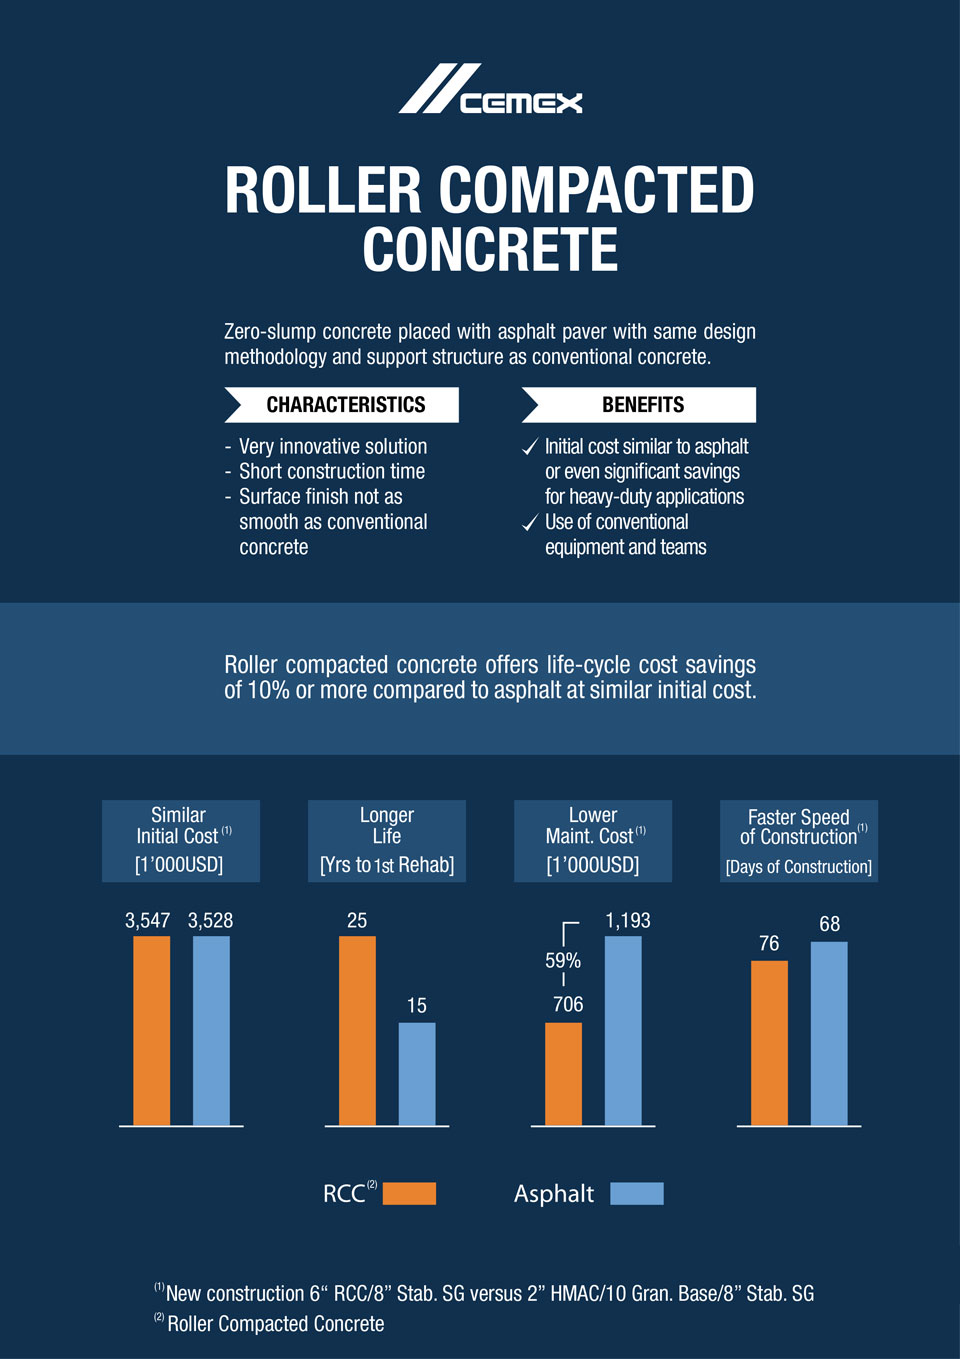 the image shows characteristics and benefits of roller compacted concrete